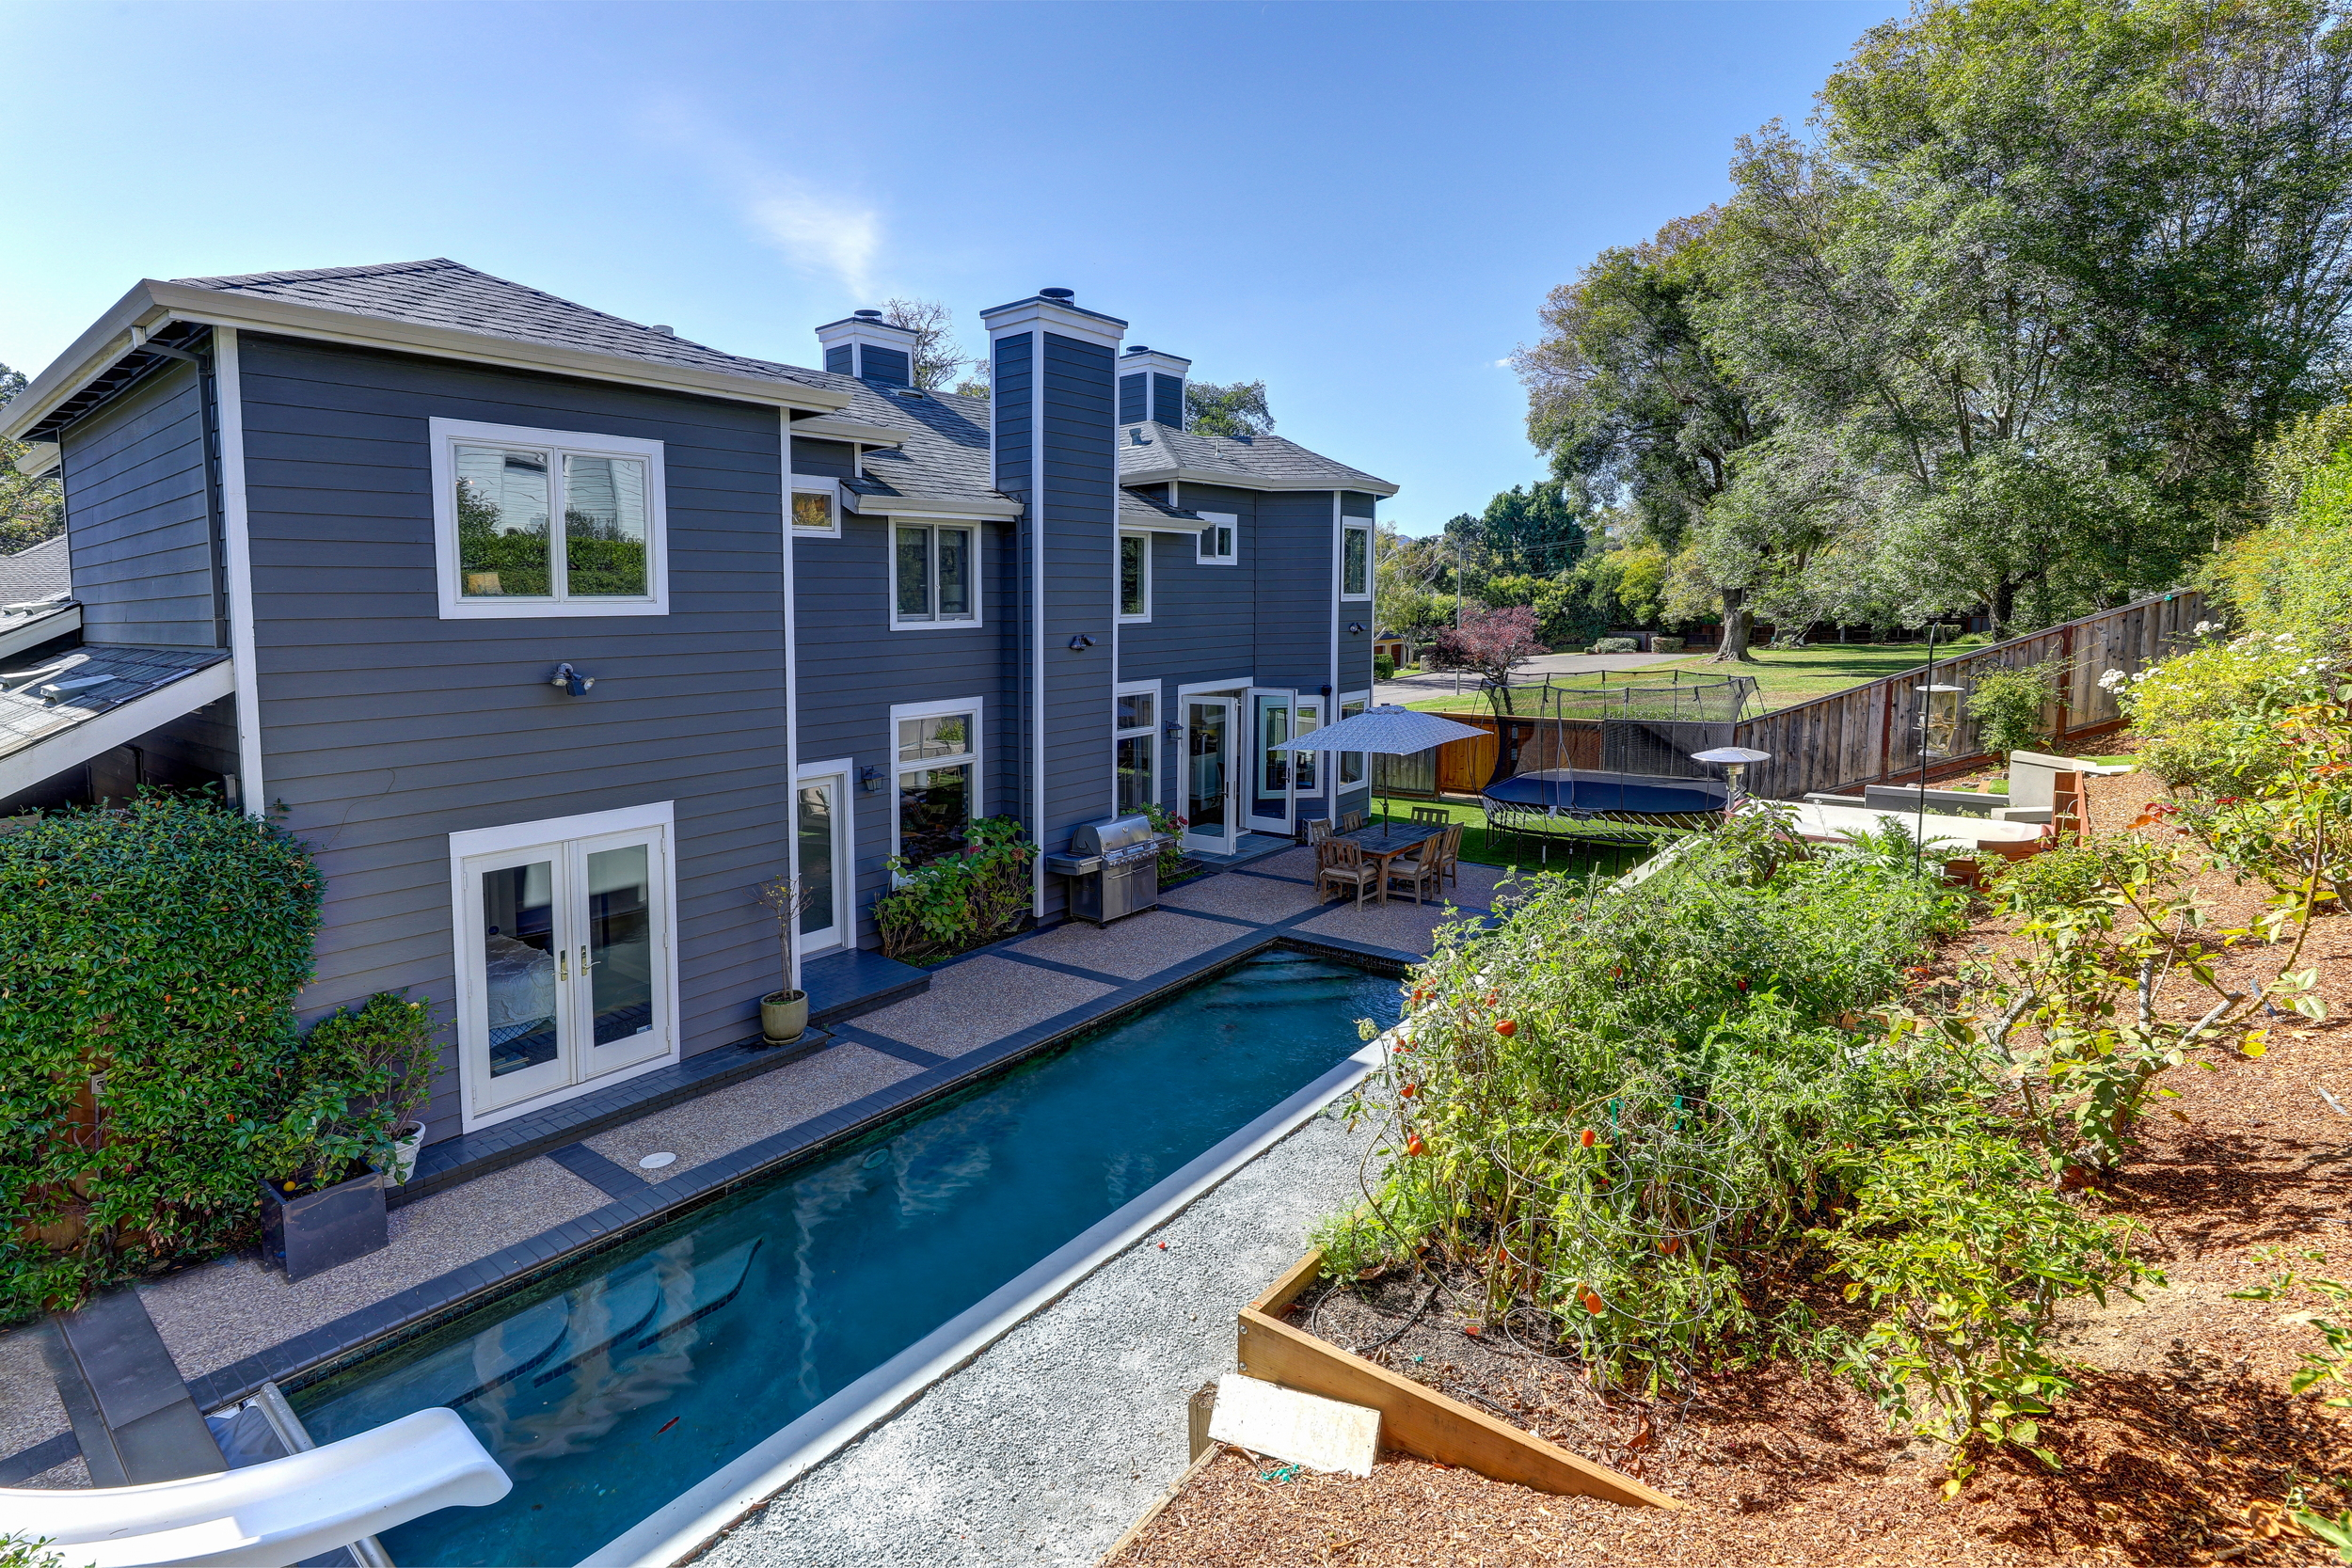 8Parkside 56 - Own Marin with Compass - Marin County Best Realtor.jpg